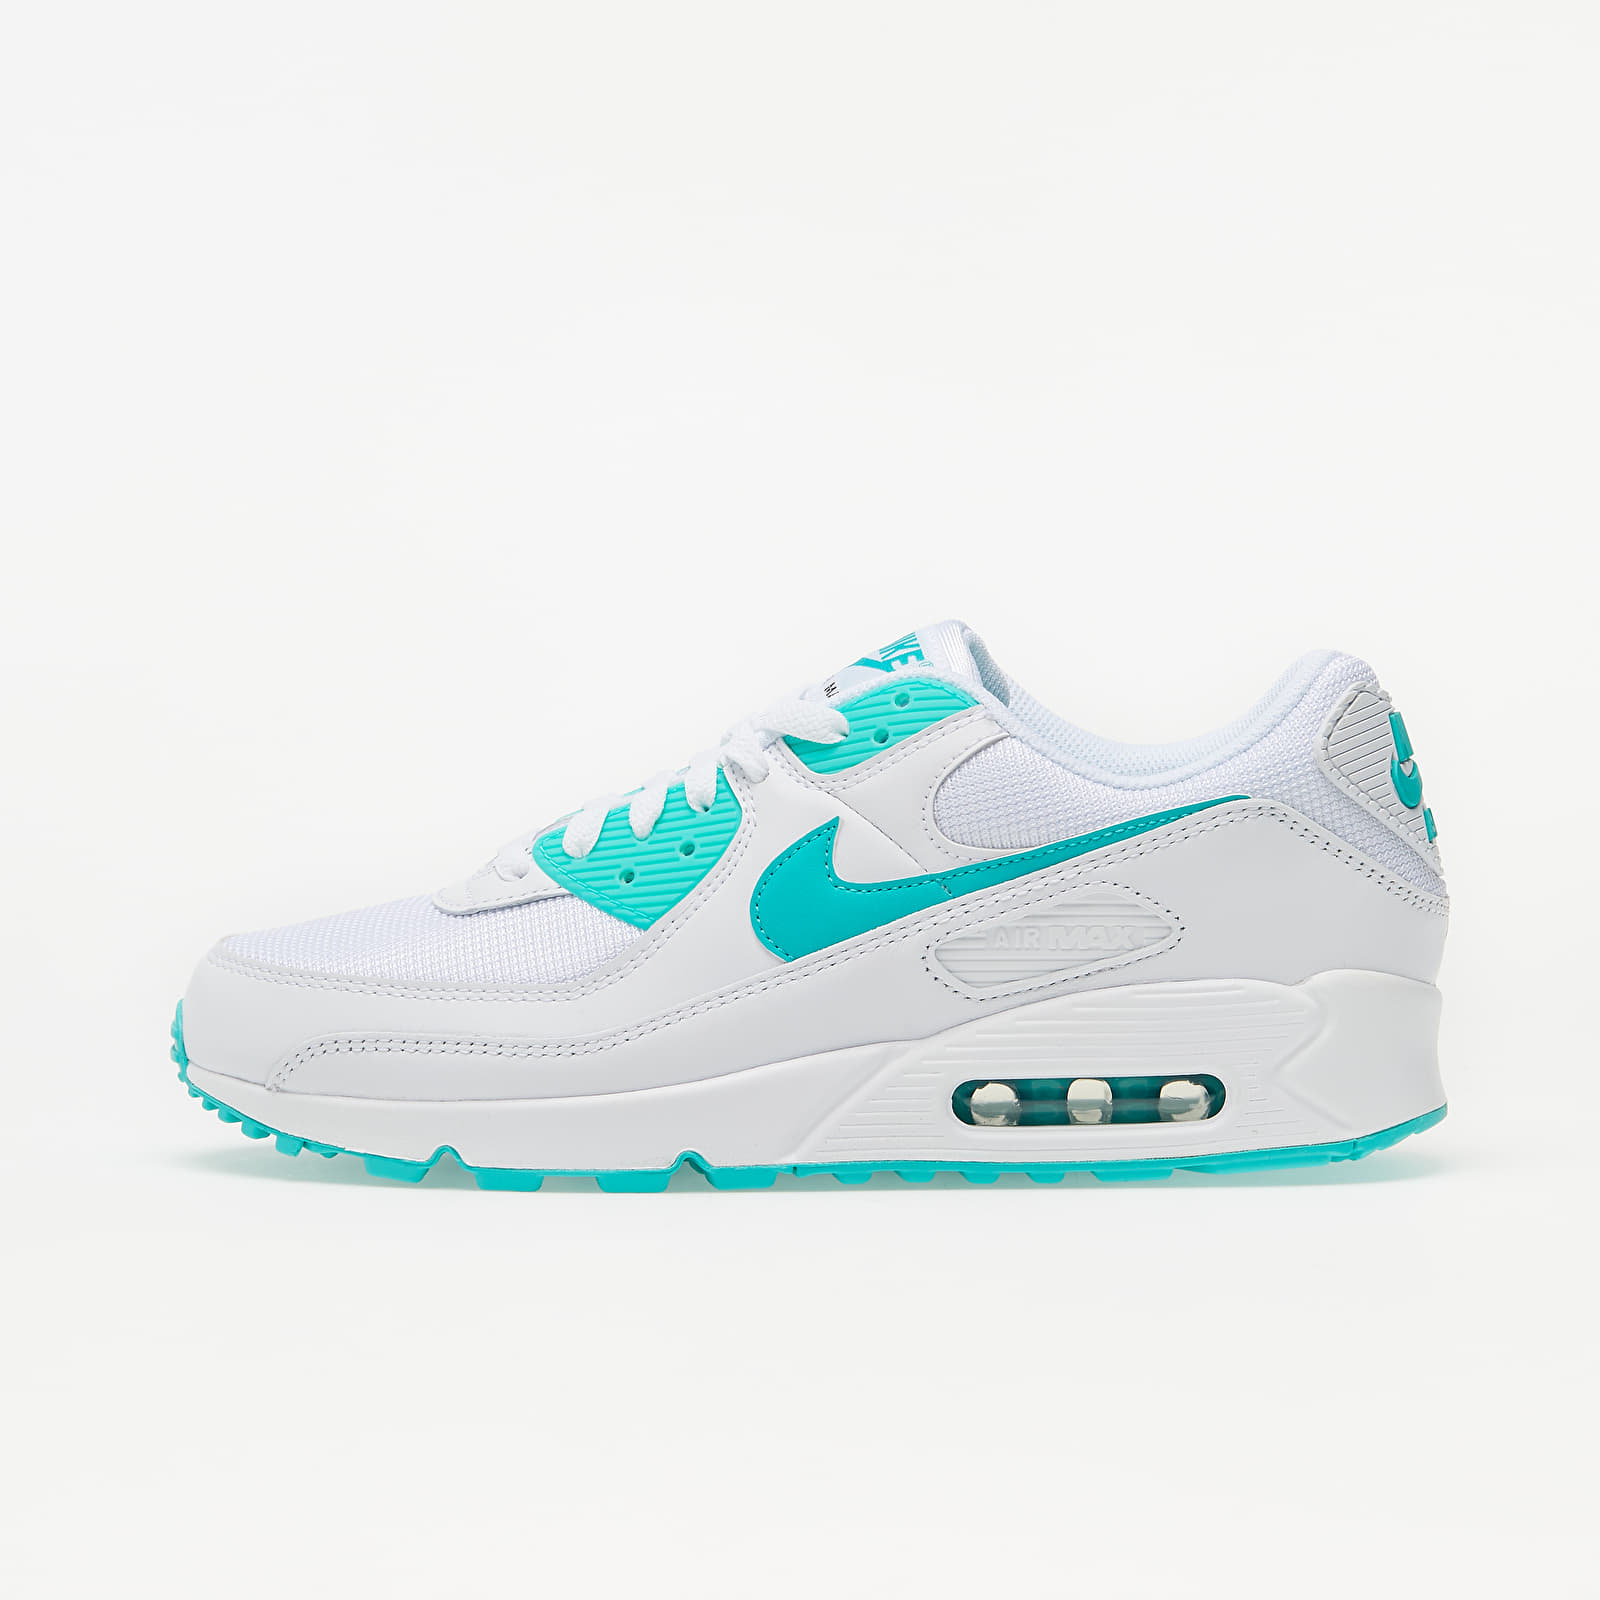 Nike Air Max 90 White/ Hyper Jade-Black EUR 45